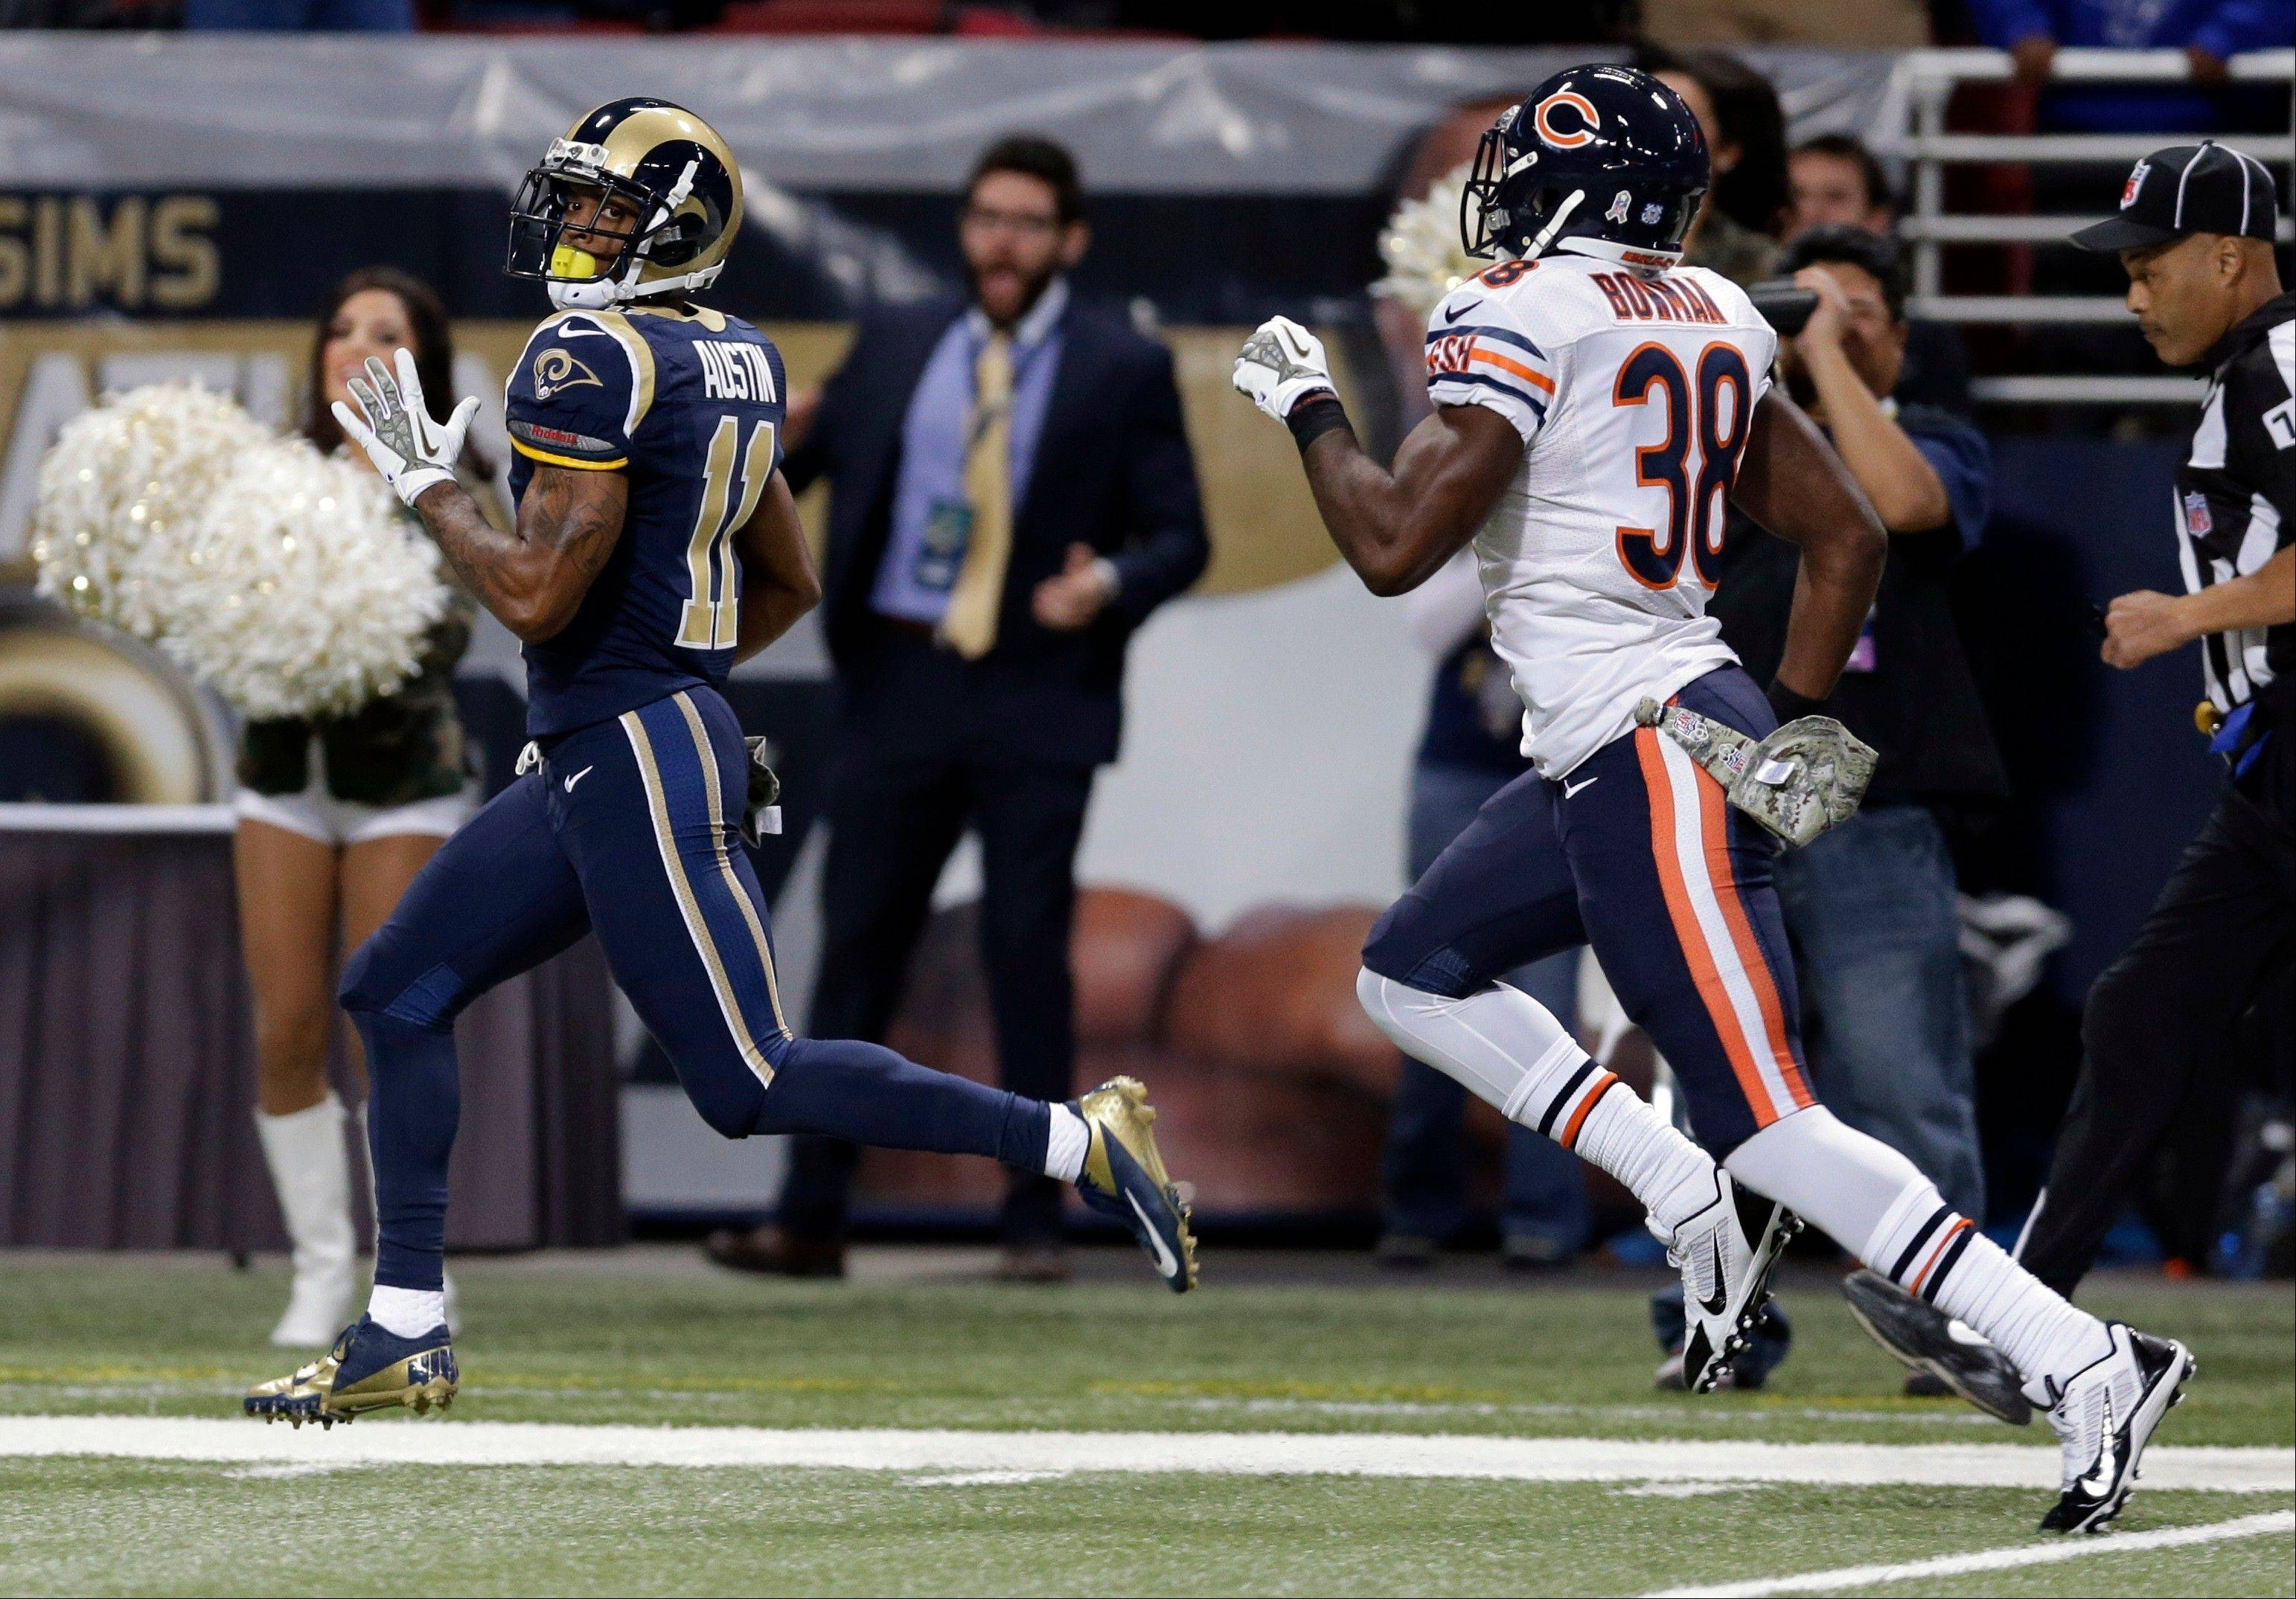 St. Louis Rams wide receiver Tavon Austin, left, runs past Chicago Bears cornerback Zack Bowman on his way to a 65-yard touchdown run during the first quarter of an NFL football game on Sunday, Nov. 24, 2013, in St. Louis.